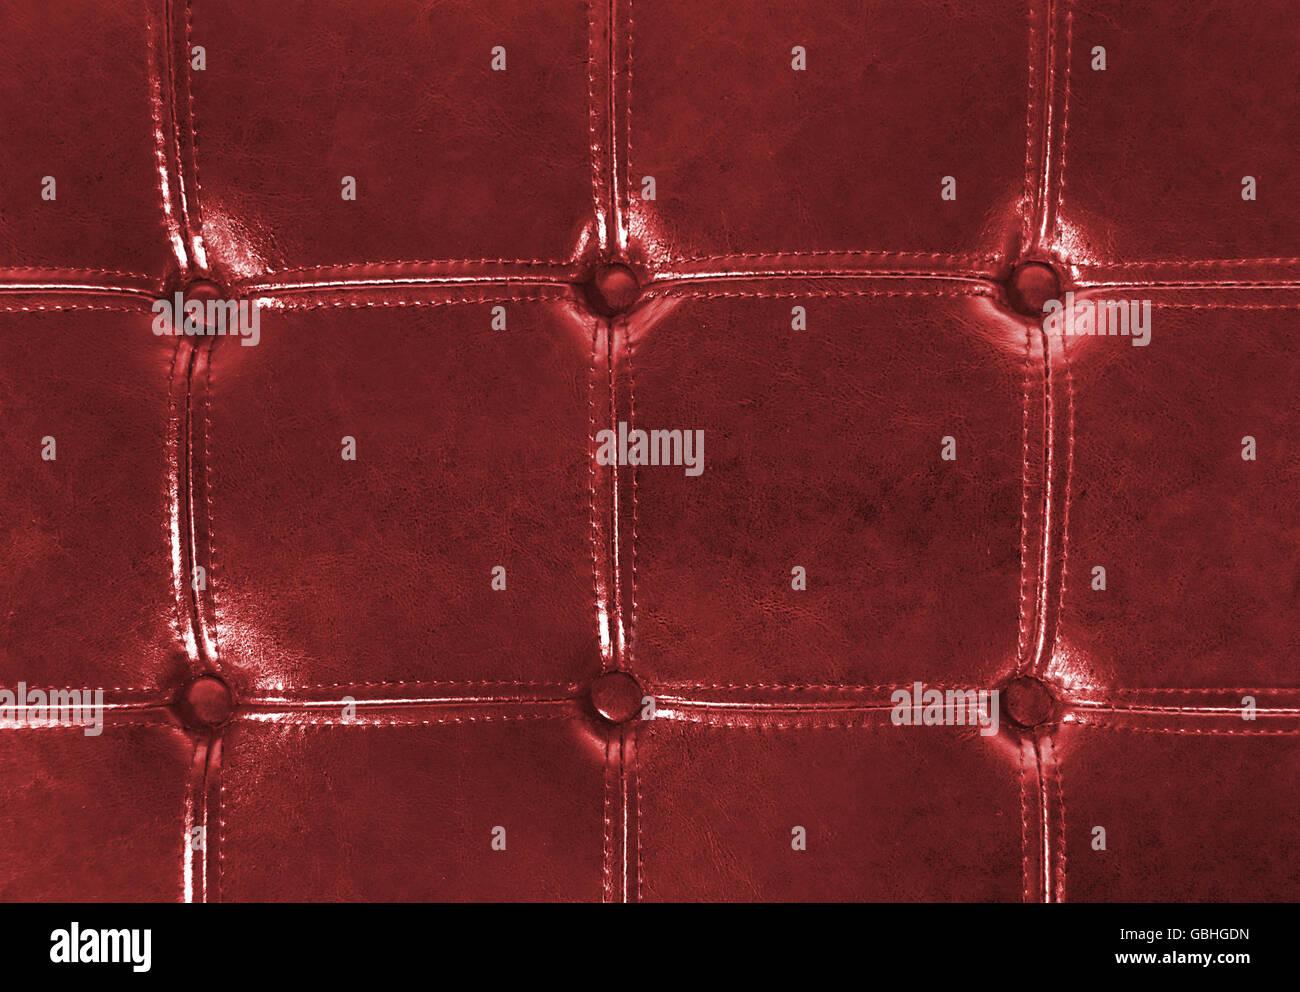 Leather Button Upholstery Stockfotos & Leather Button Upholstery ...